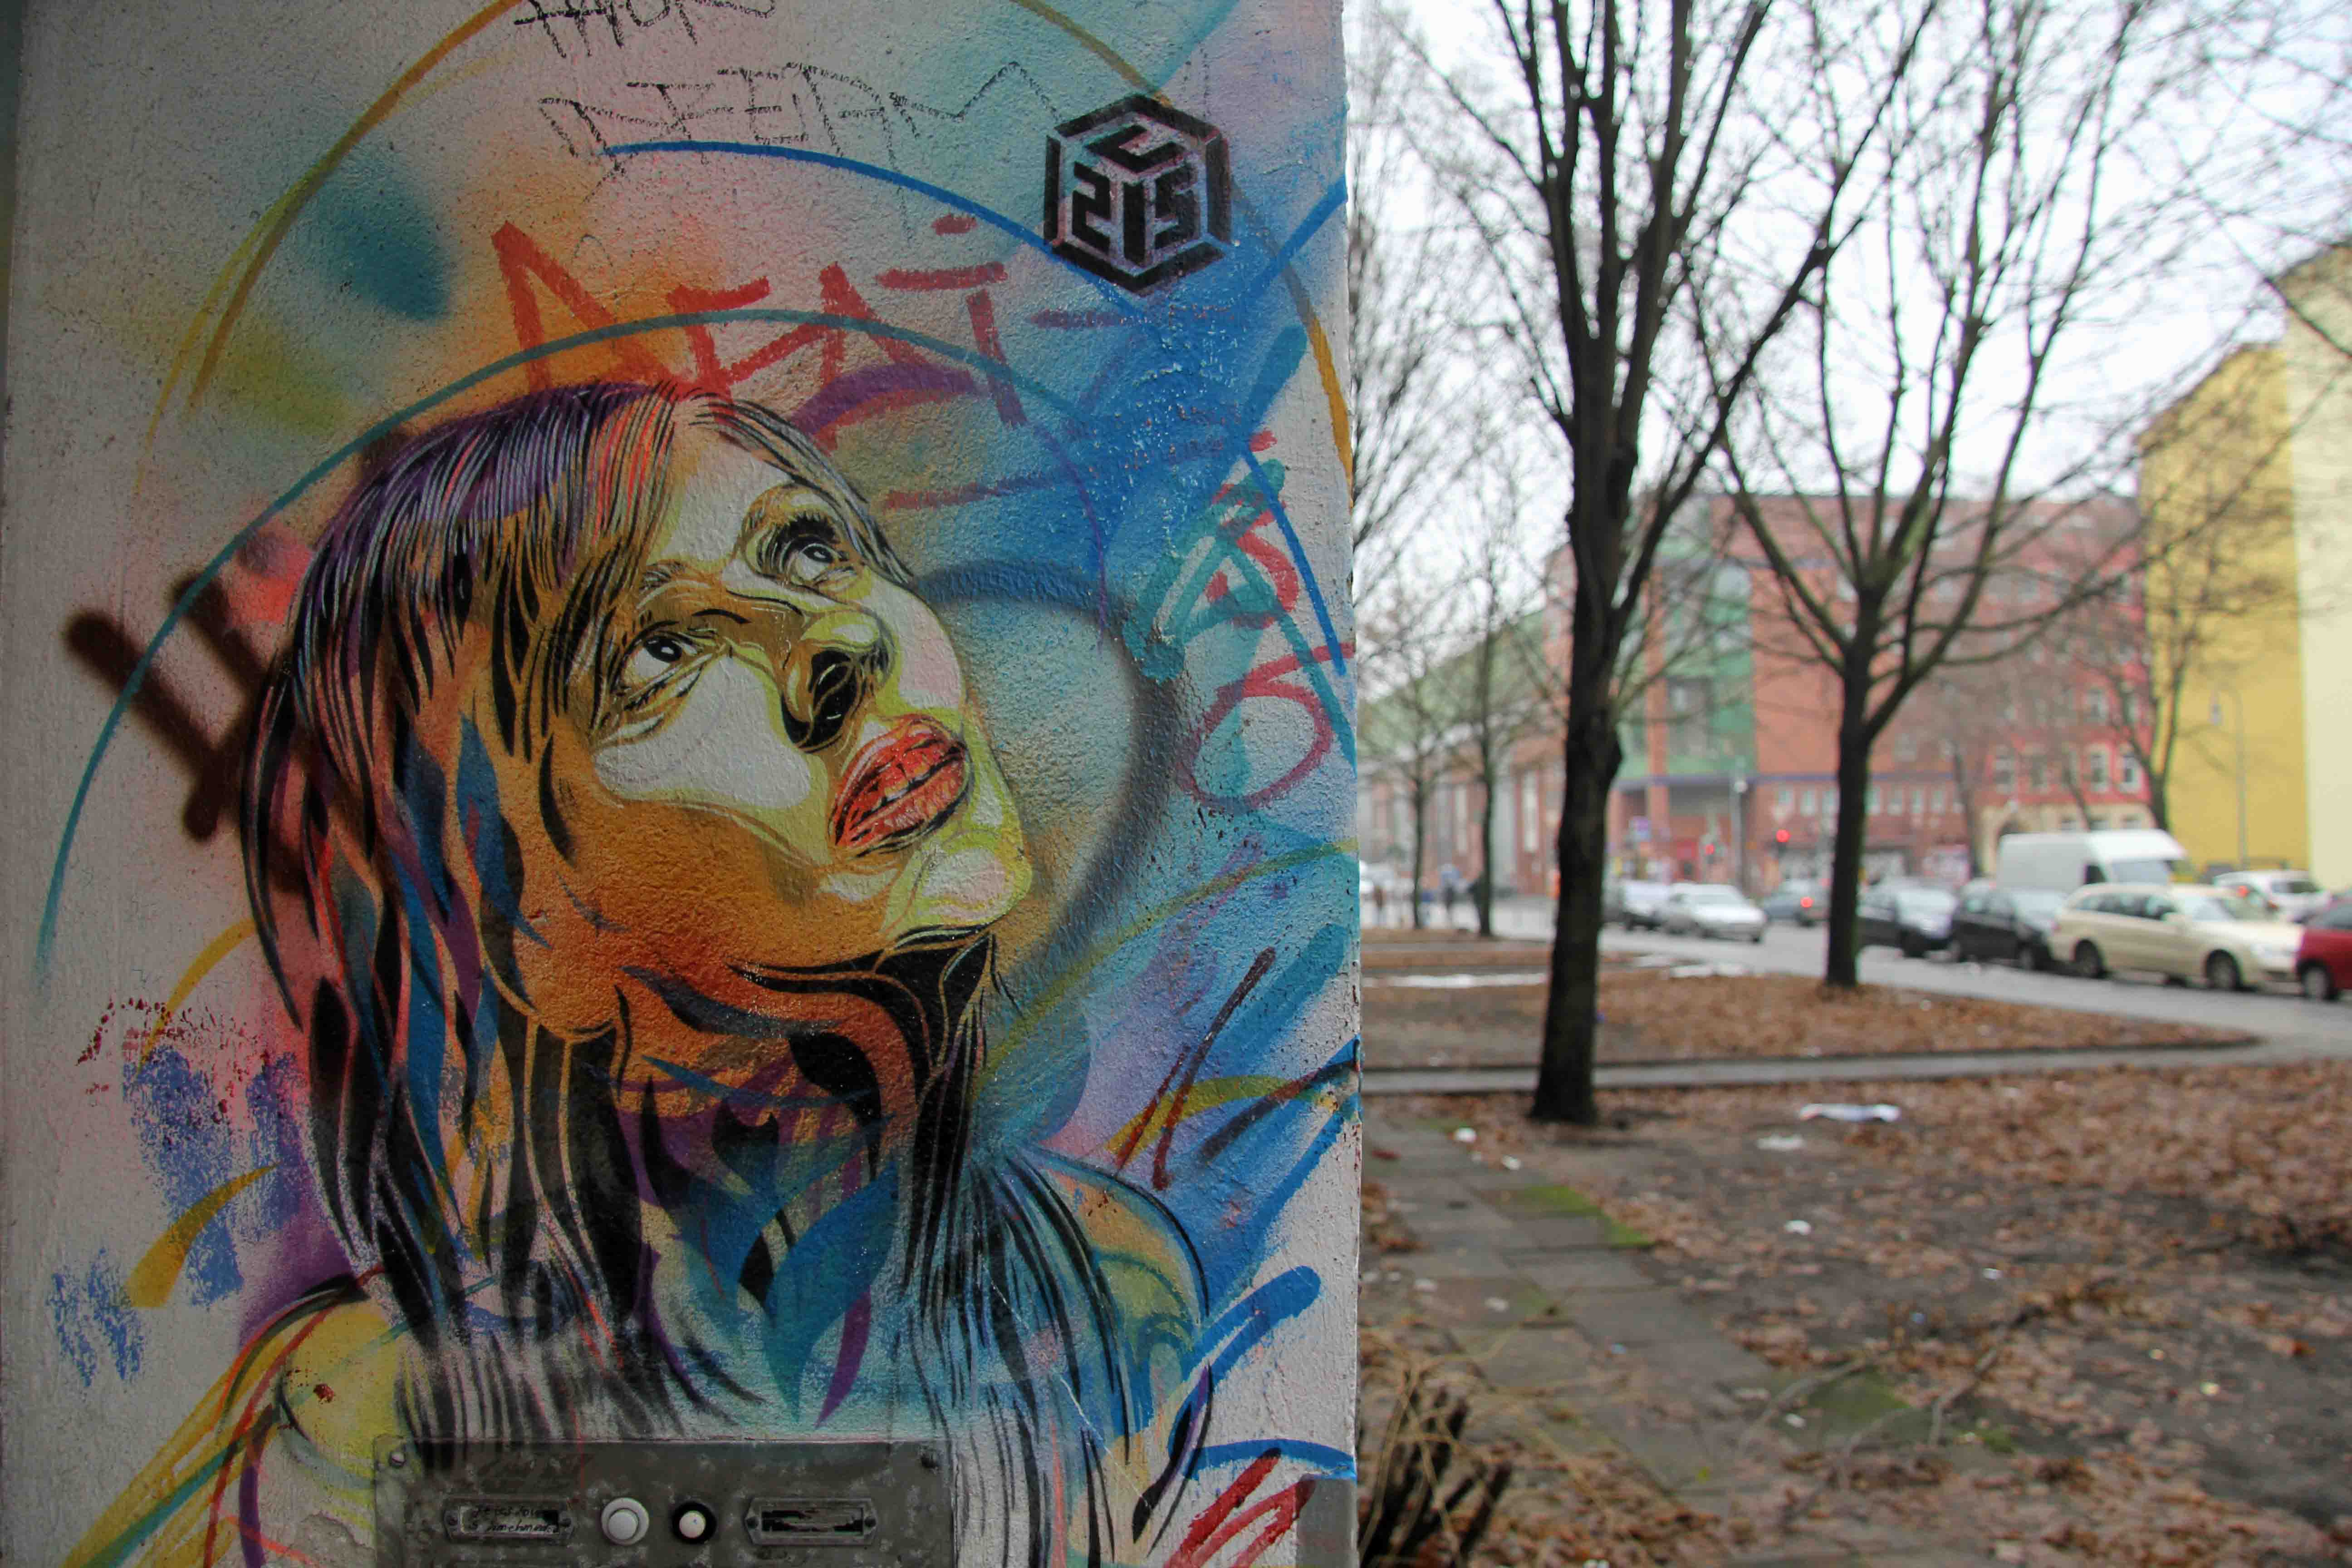 Looking Up - Street Art by C215 in Berlin